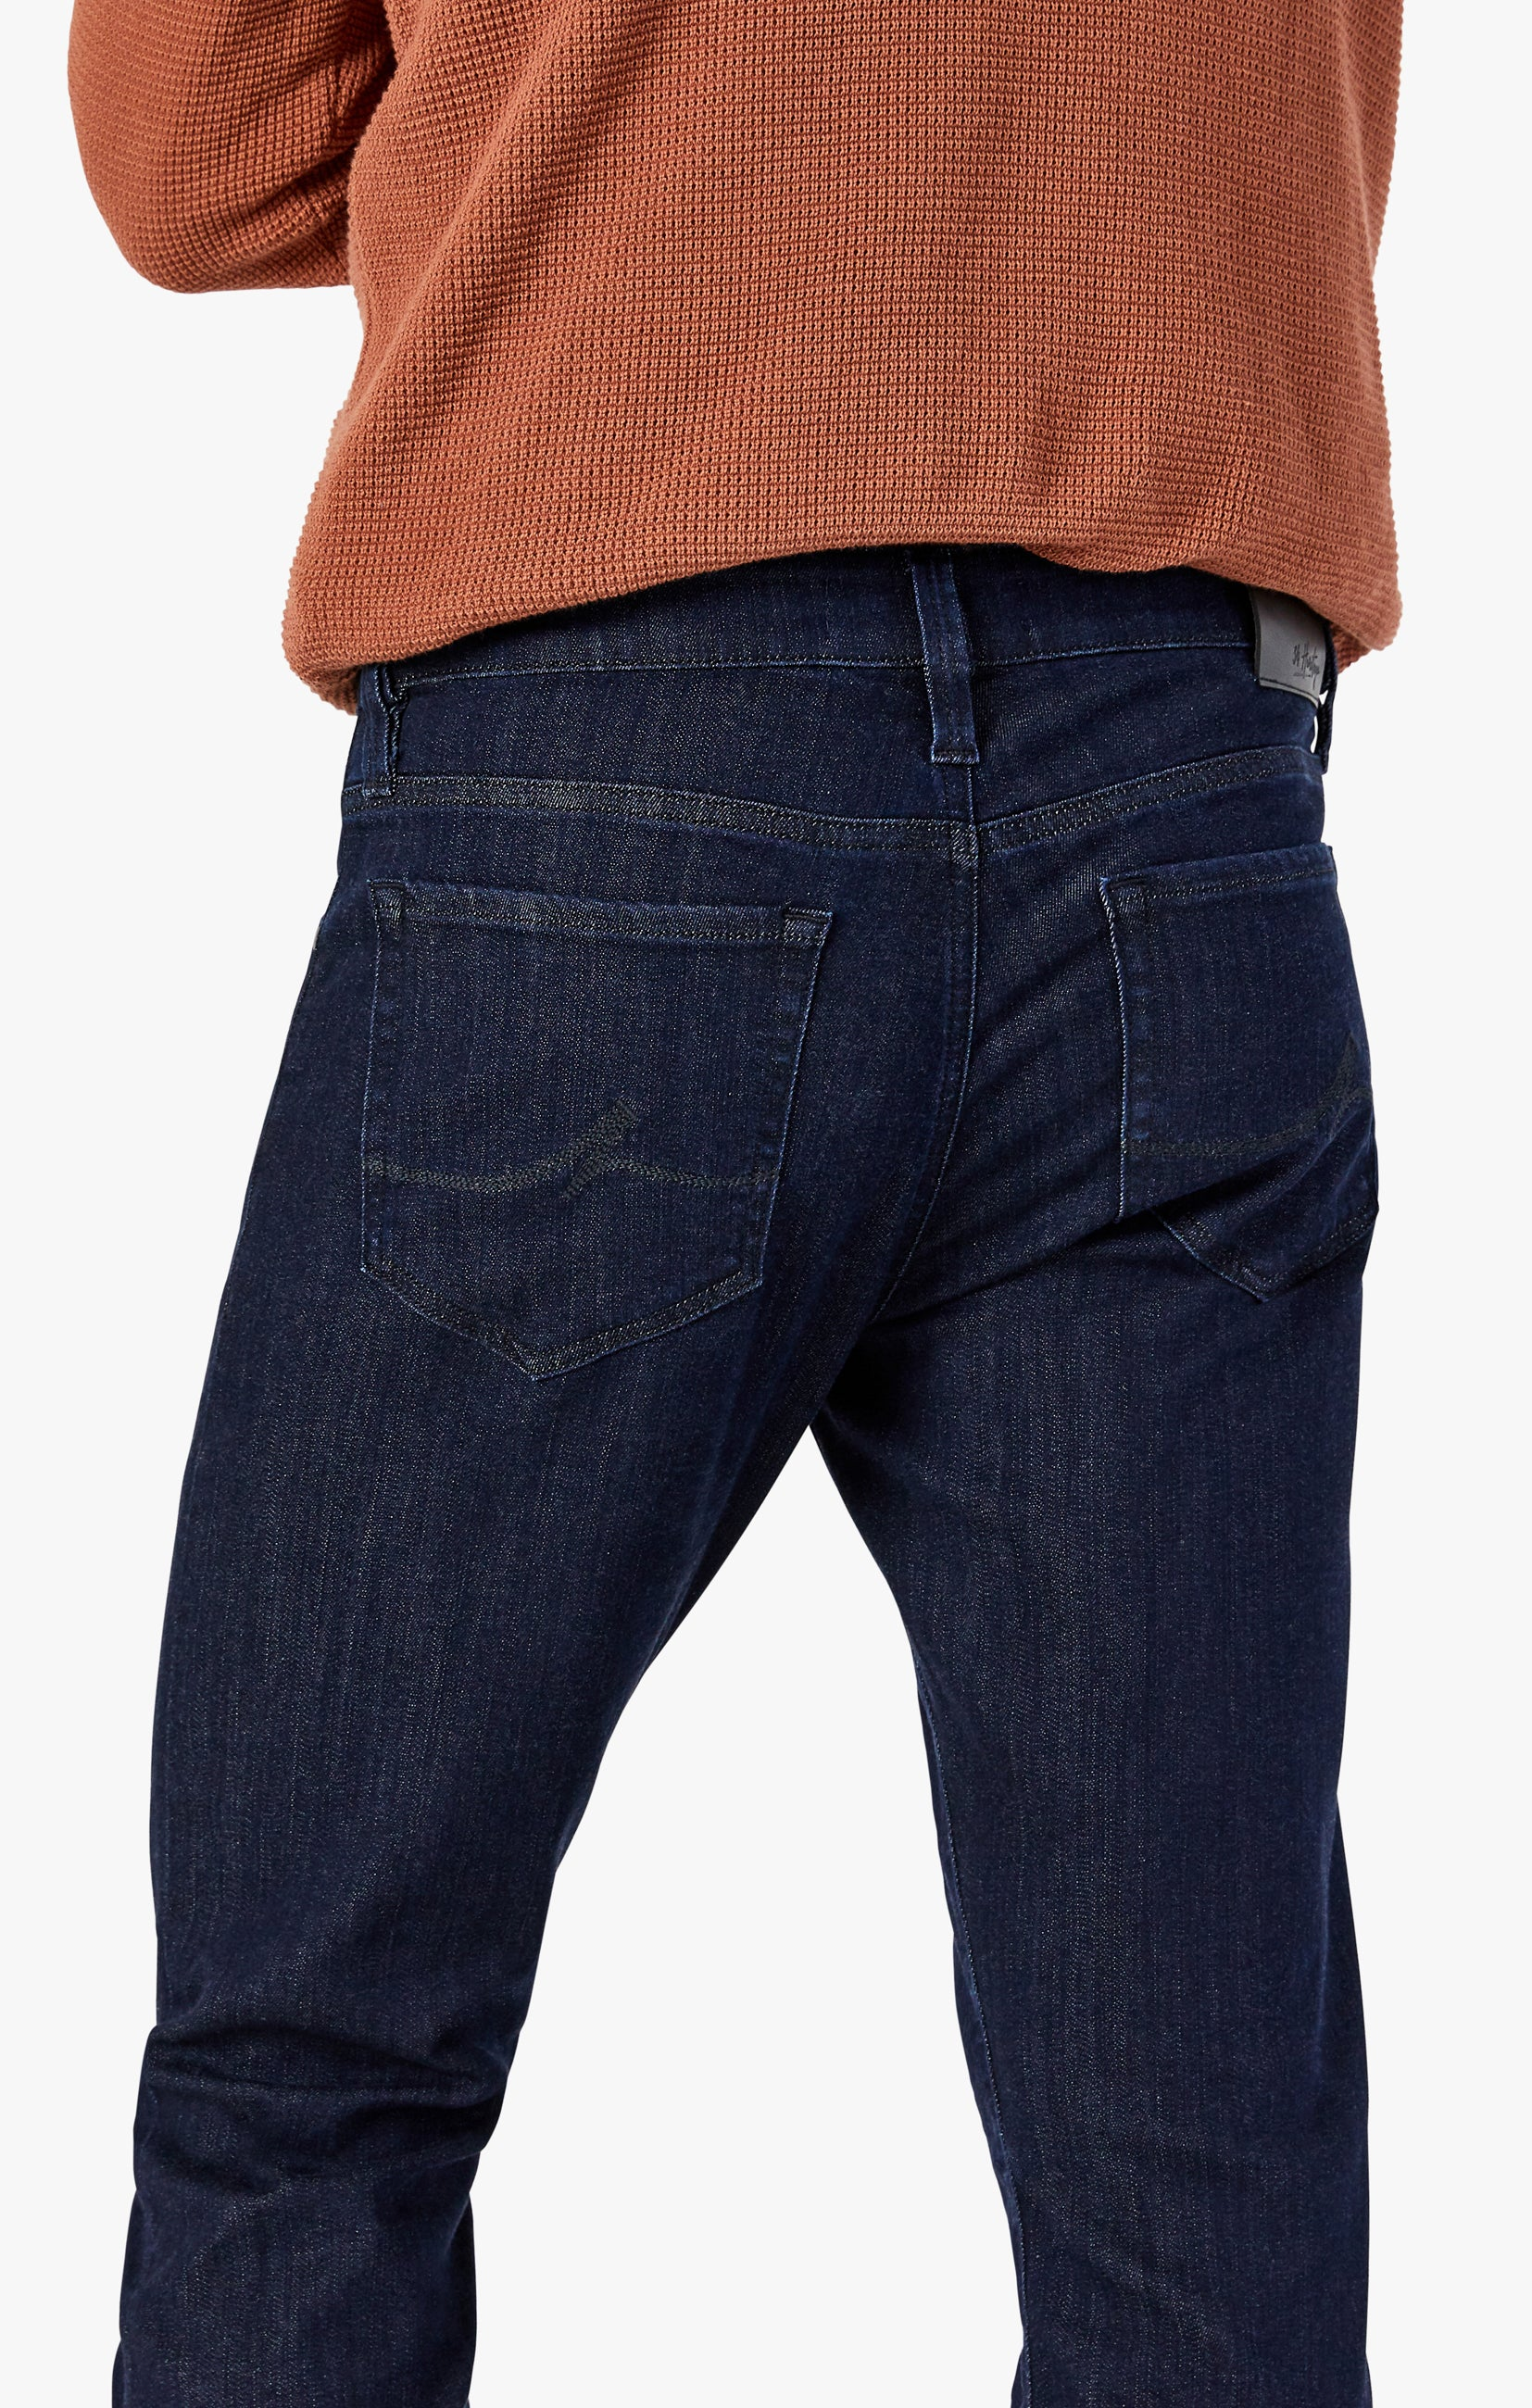 Courage Straight Leg Jeans In Rinse Ultra Image 6